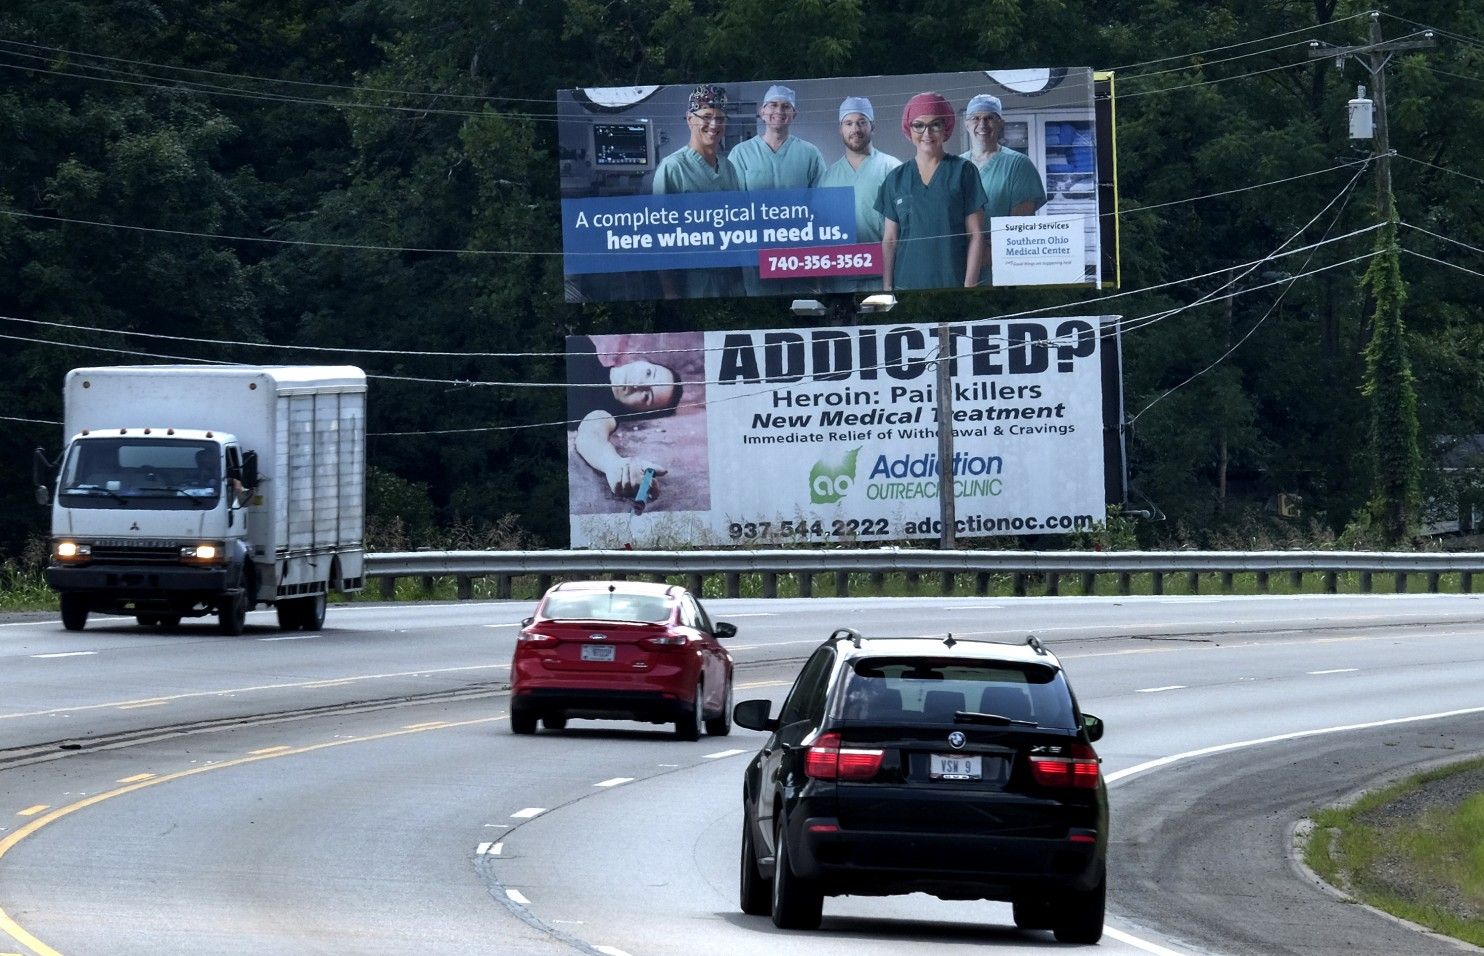 My body count of one in the opioid crisis